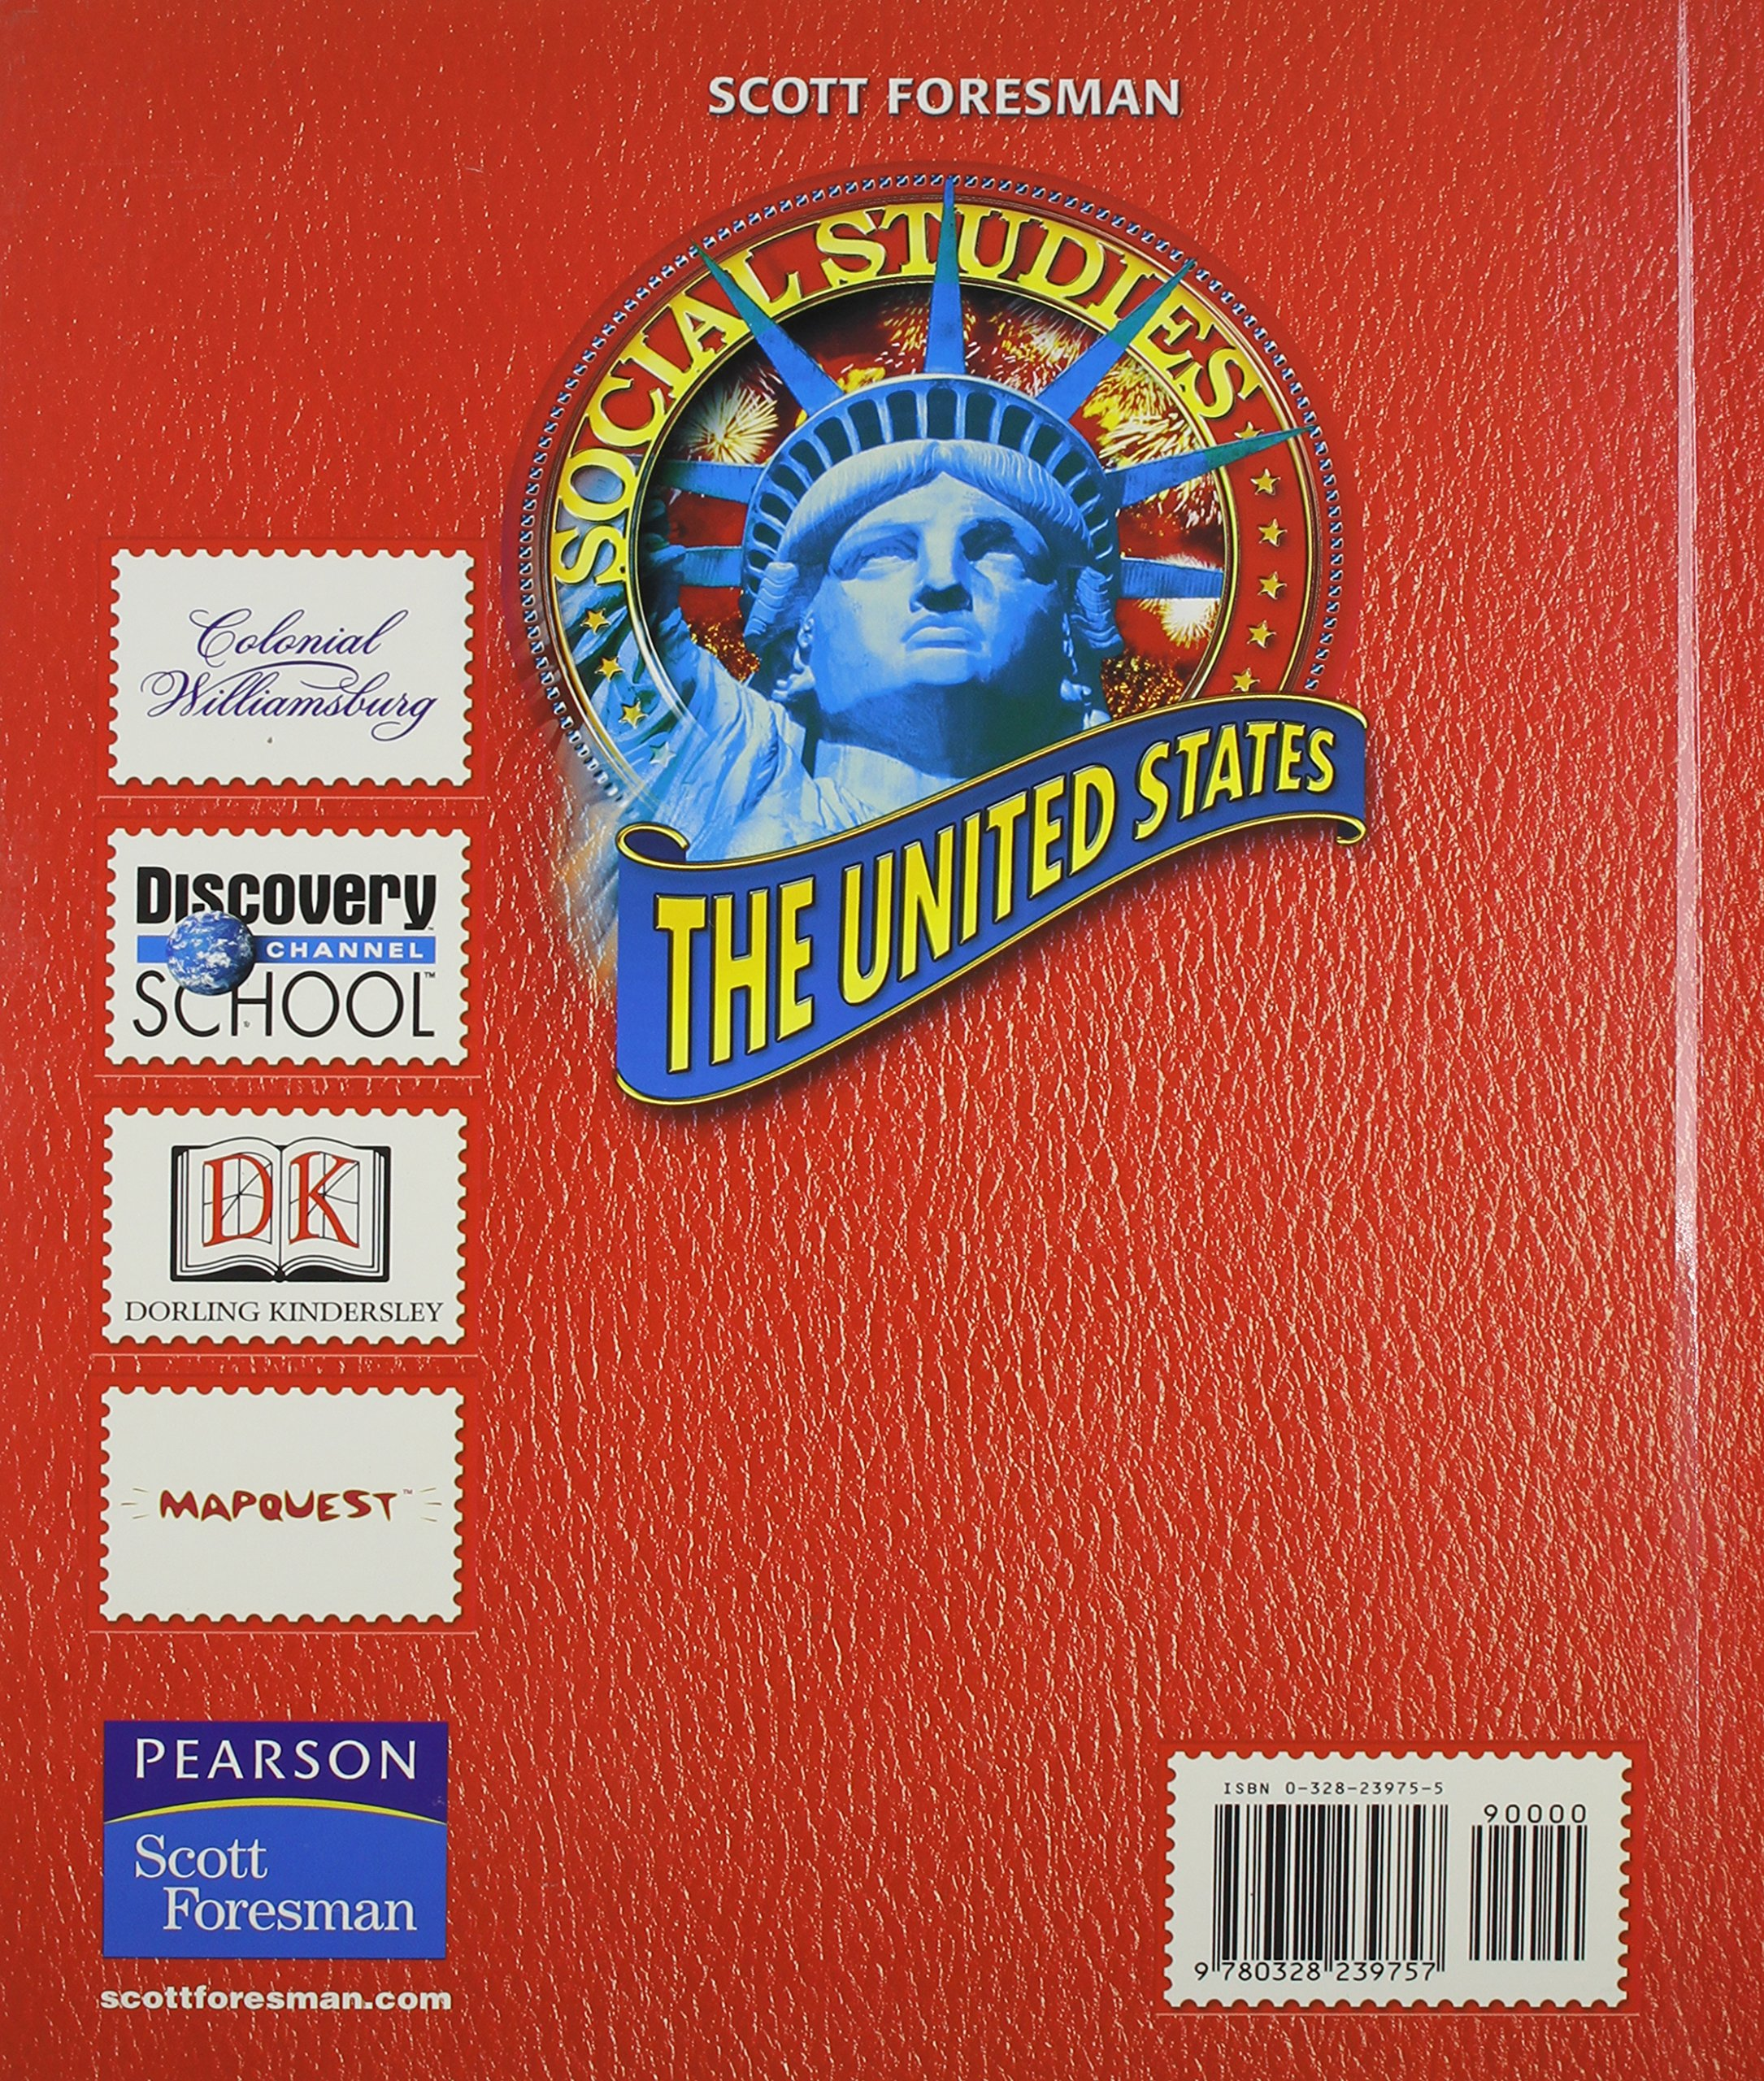 SOCIAL STUDIES 2008 STUDENT EDITION (HARDCOVER) GRADE 5 THE UNITED      STATES (Scott, Foresman Social Studies) by Scott Foresman (Image #2)